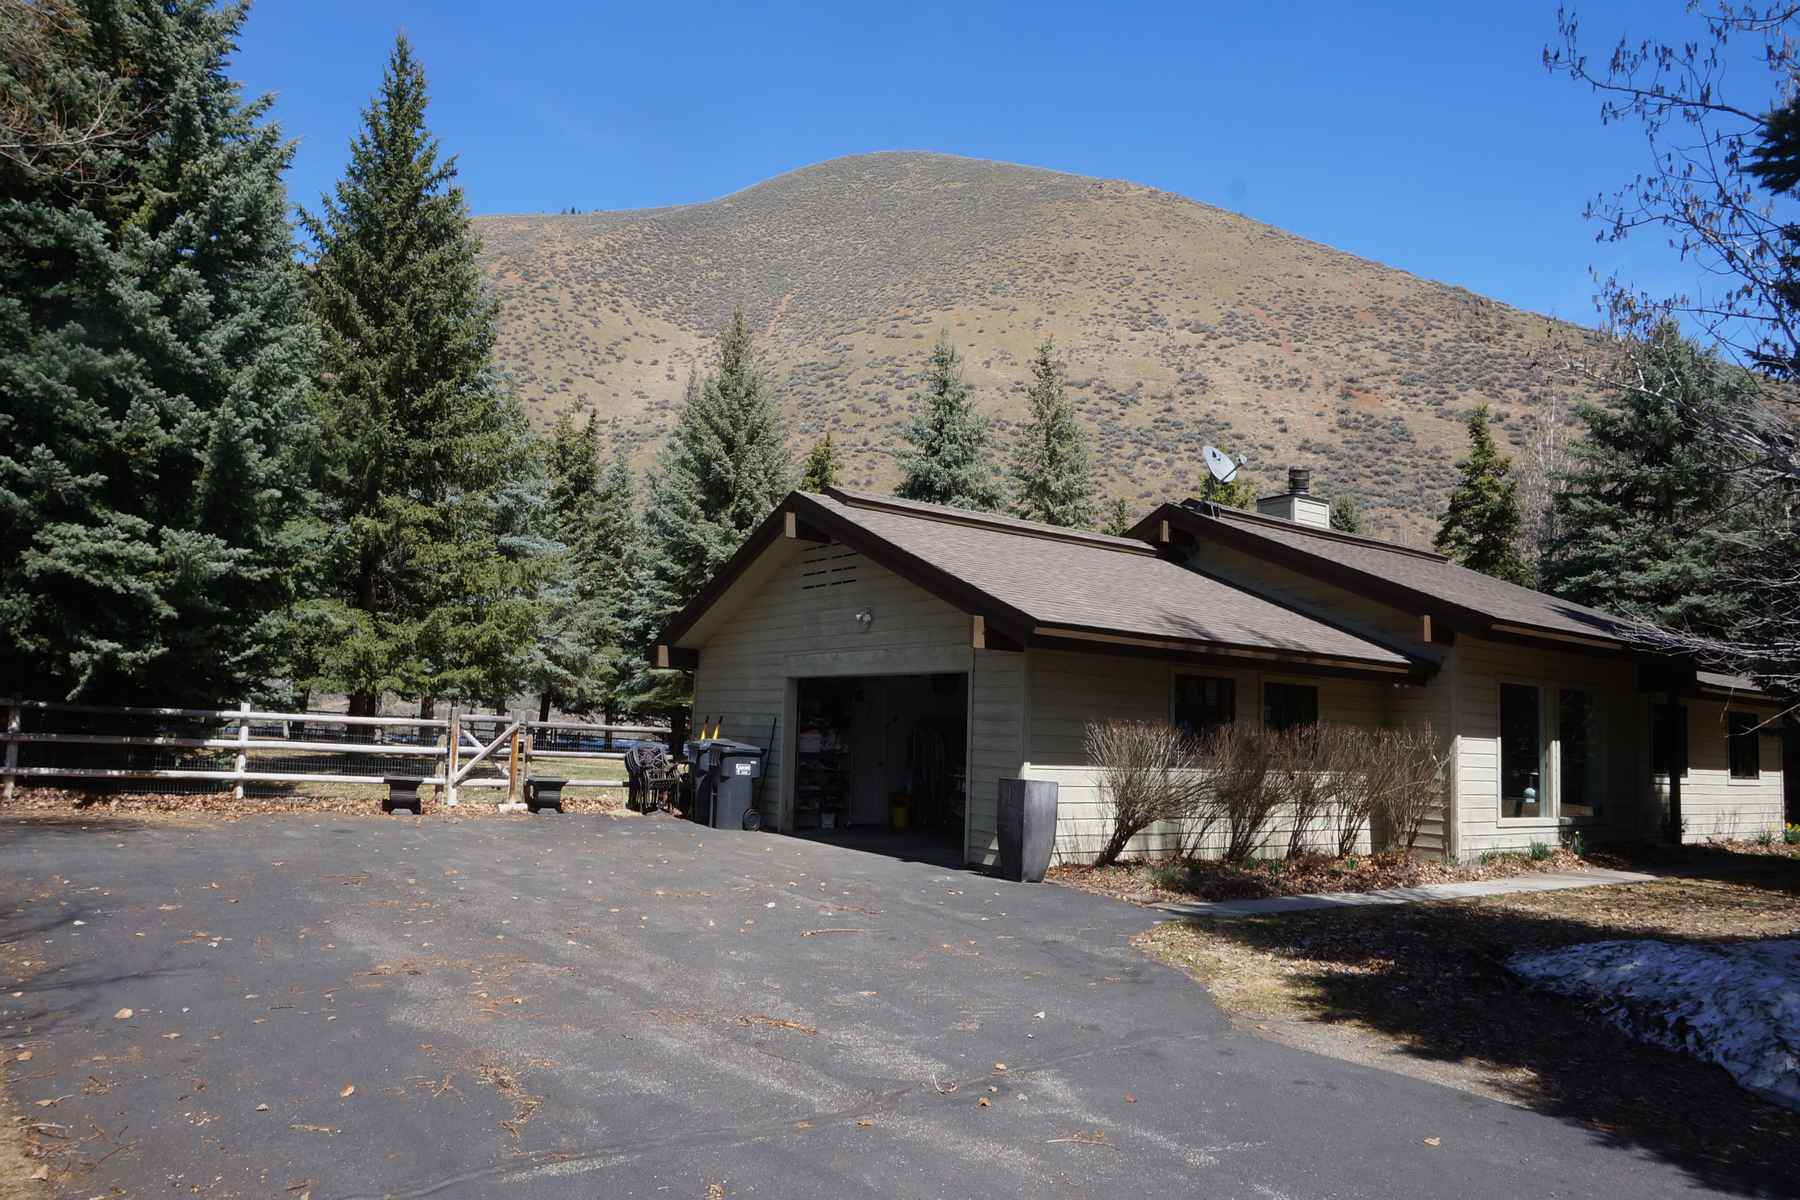 Maison unifamiliale pour l Vente à Private Heatherlands Home 113 Dogwood Rd Hailey, Idaho, 83333 États-Unis